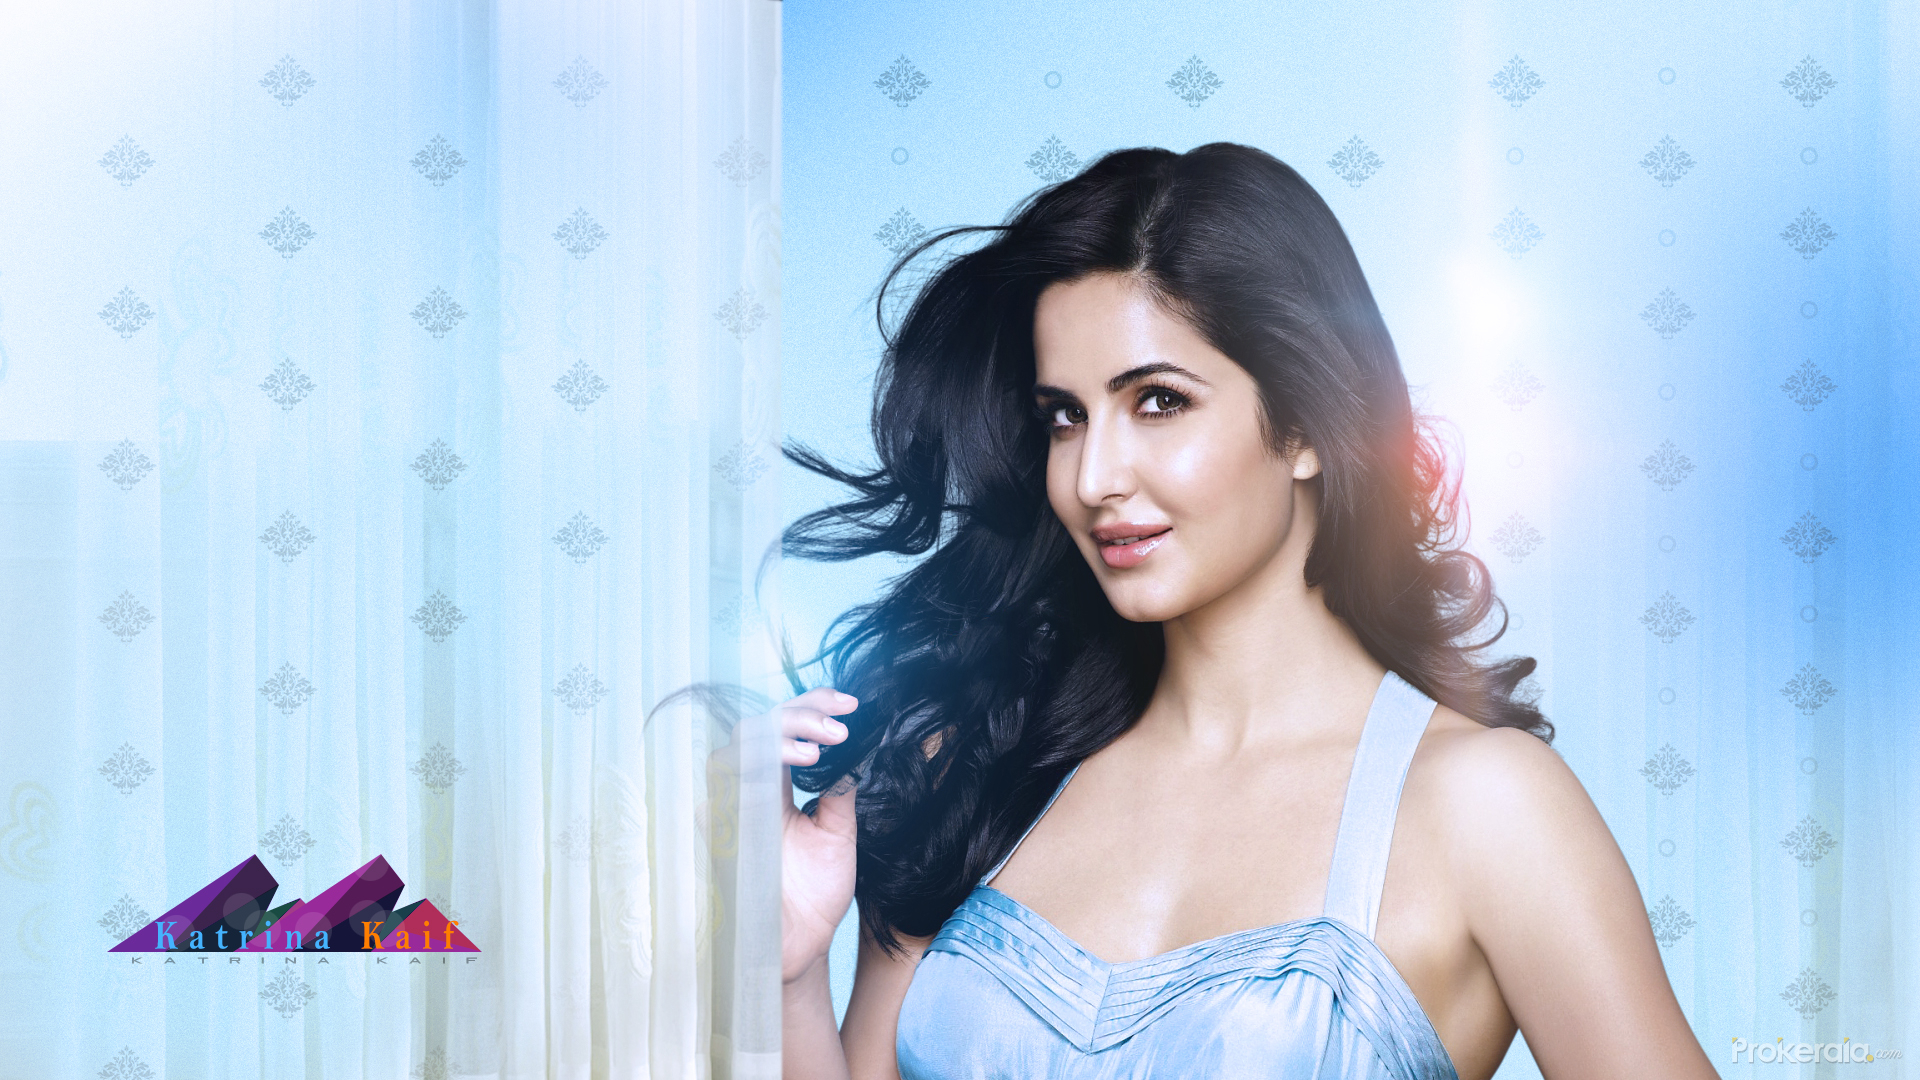 download katrina kaif wallpaper # 1 | hd katrina kaif wallpaper # 1